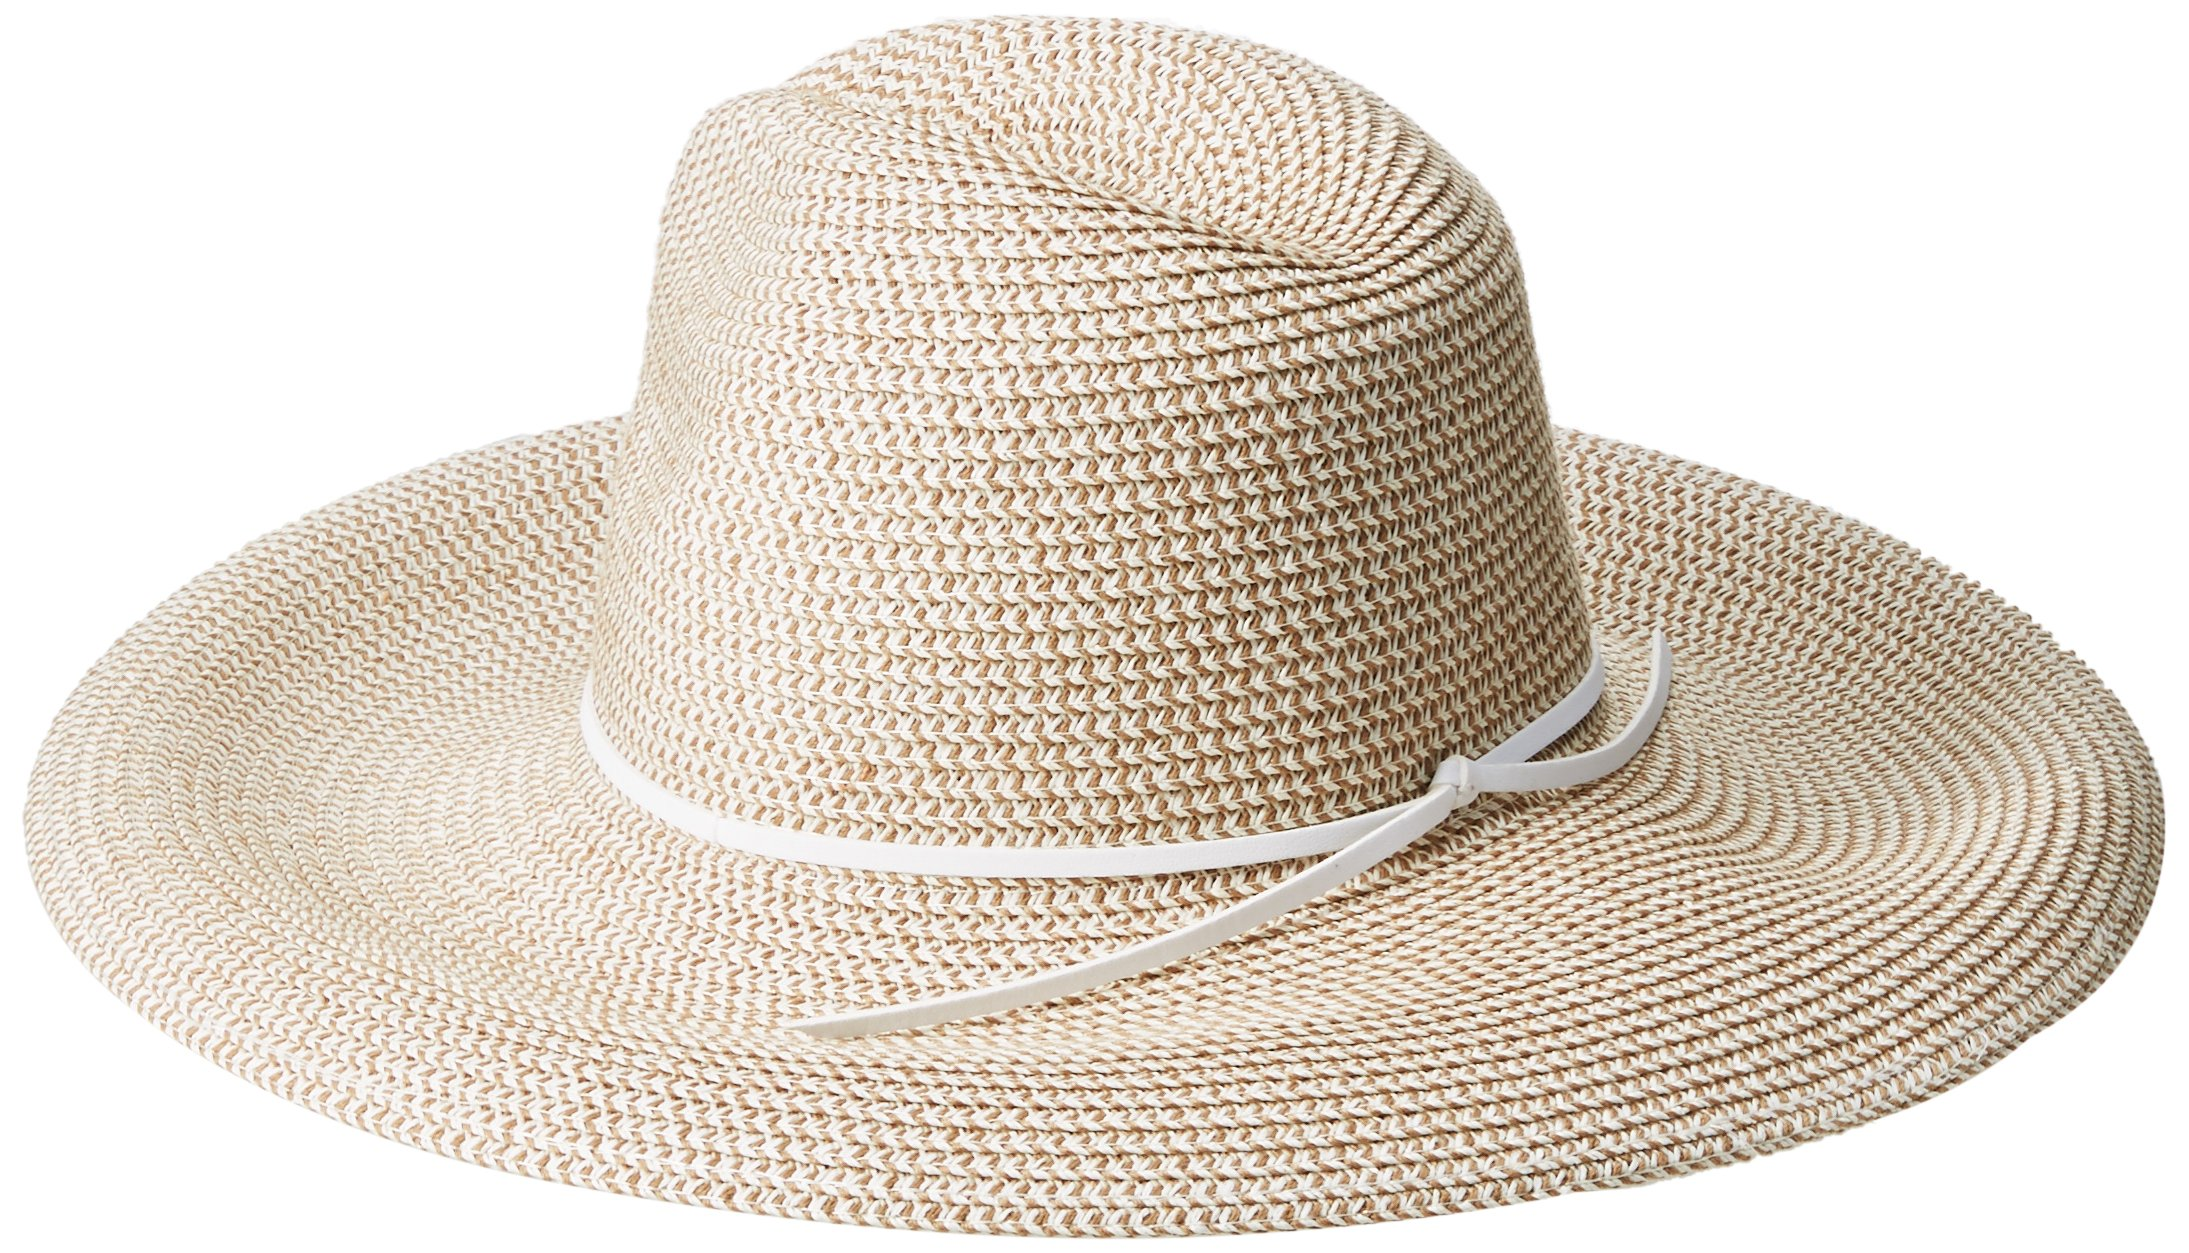 'ale by alessandra Women's Sancho Adjustable Toyo Hat with Leather Trim, White Tweed, Adjustable Head Size by ale by Alessandra (Image #2)